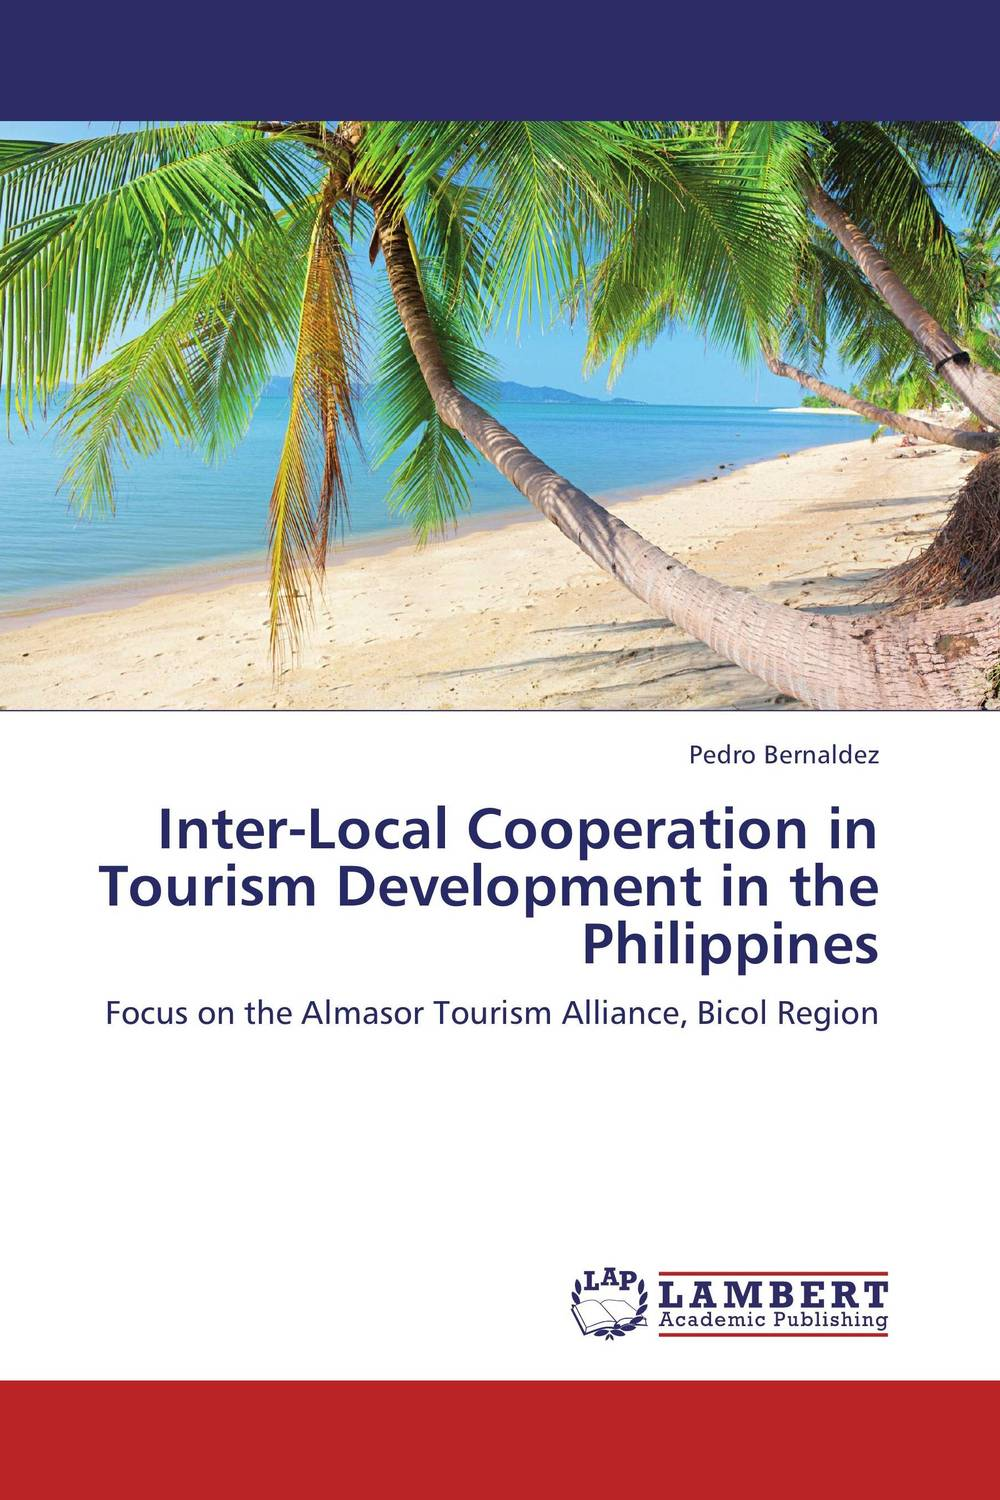 Inter-Local Cooperation in Tourism Development in the Philippines